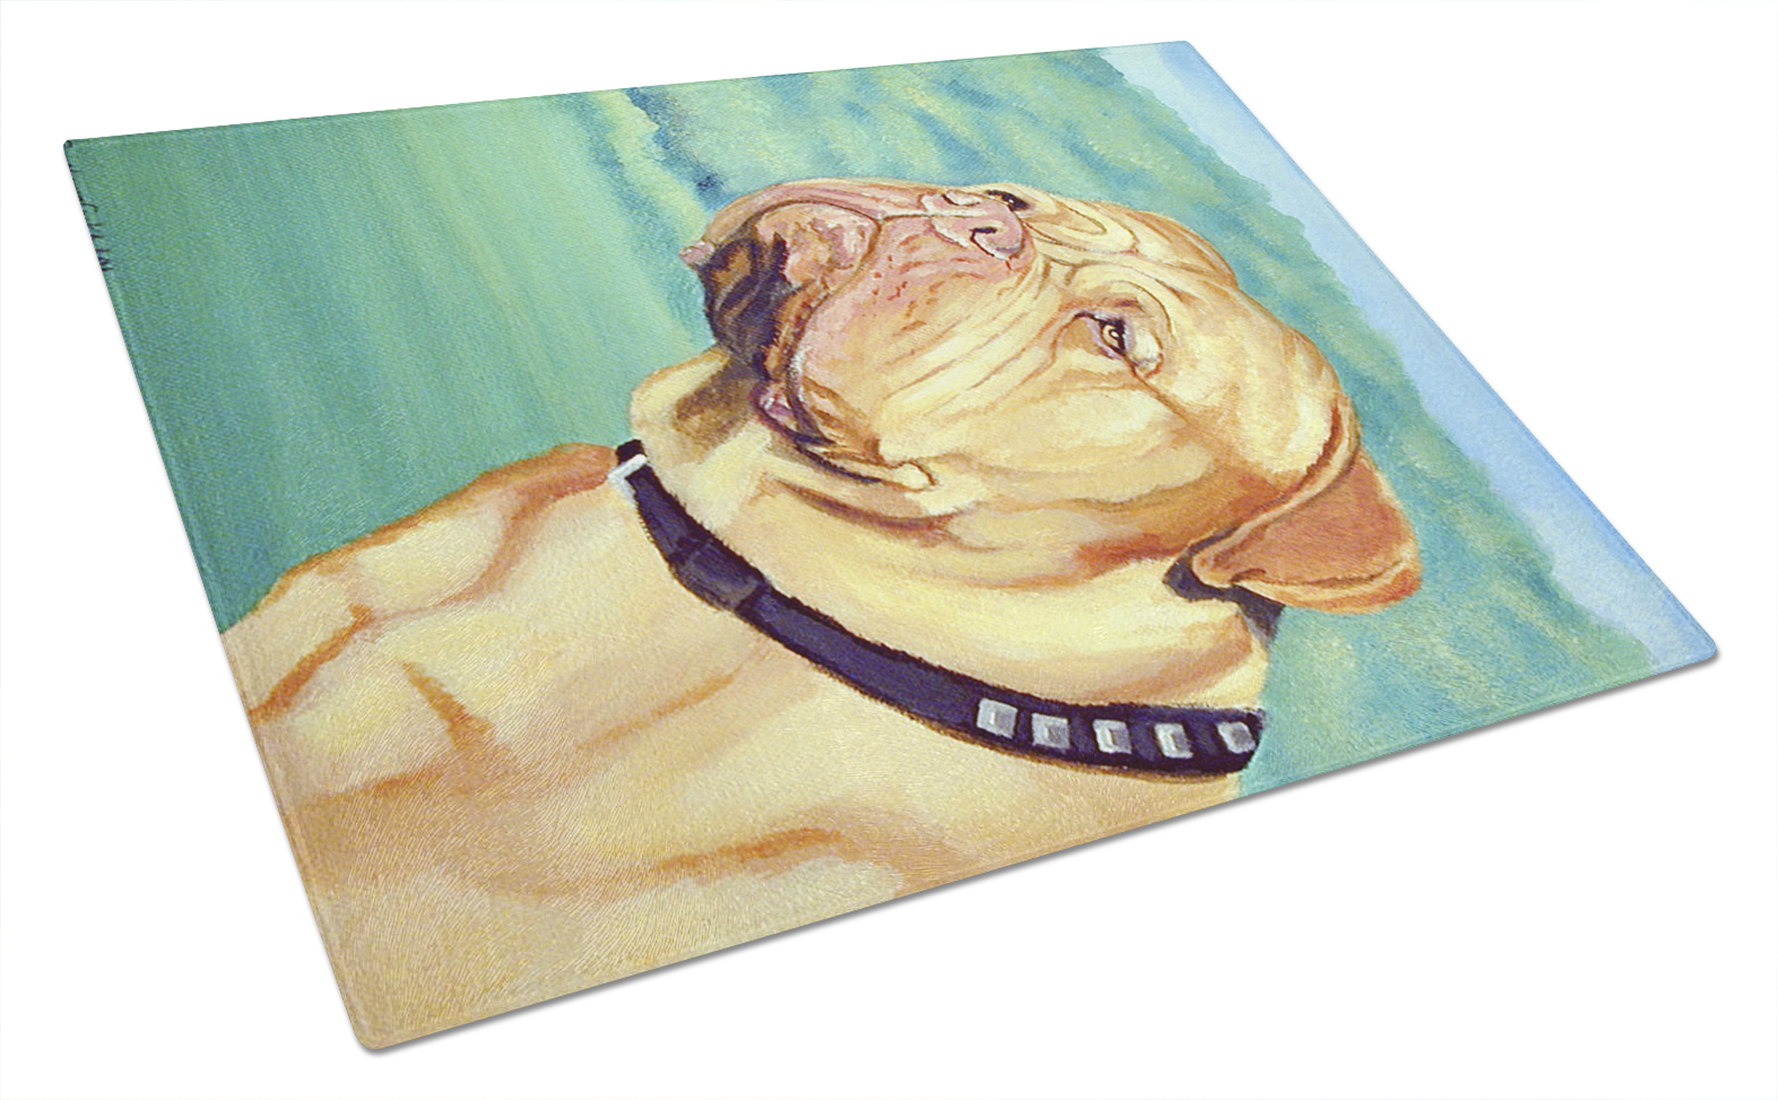 Dogue de Bordeaux Glass Cutting Board Large by Caroline's Treasures